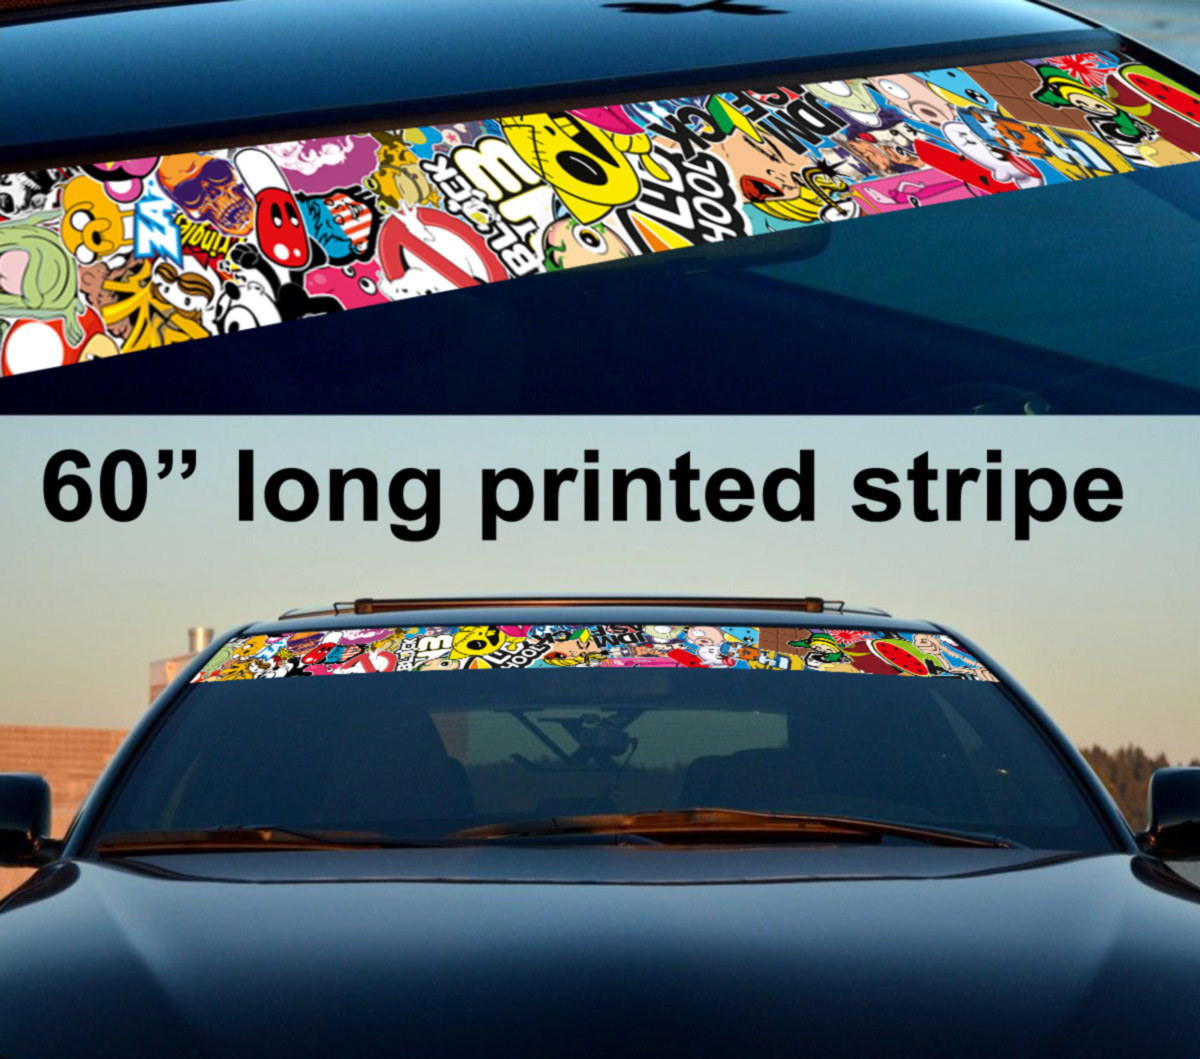 Compare to JDM Legend Windshield Decals Cars Stickers Banners Window Graphic